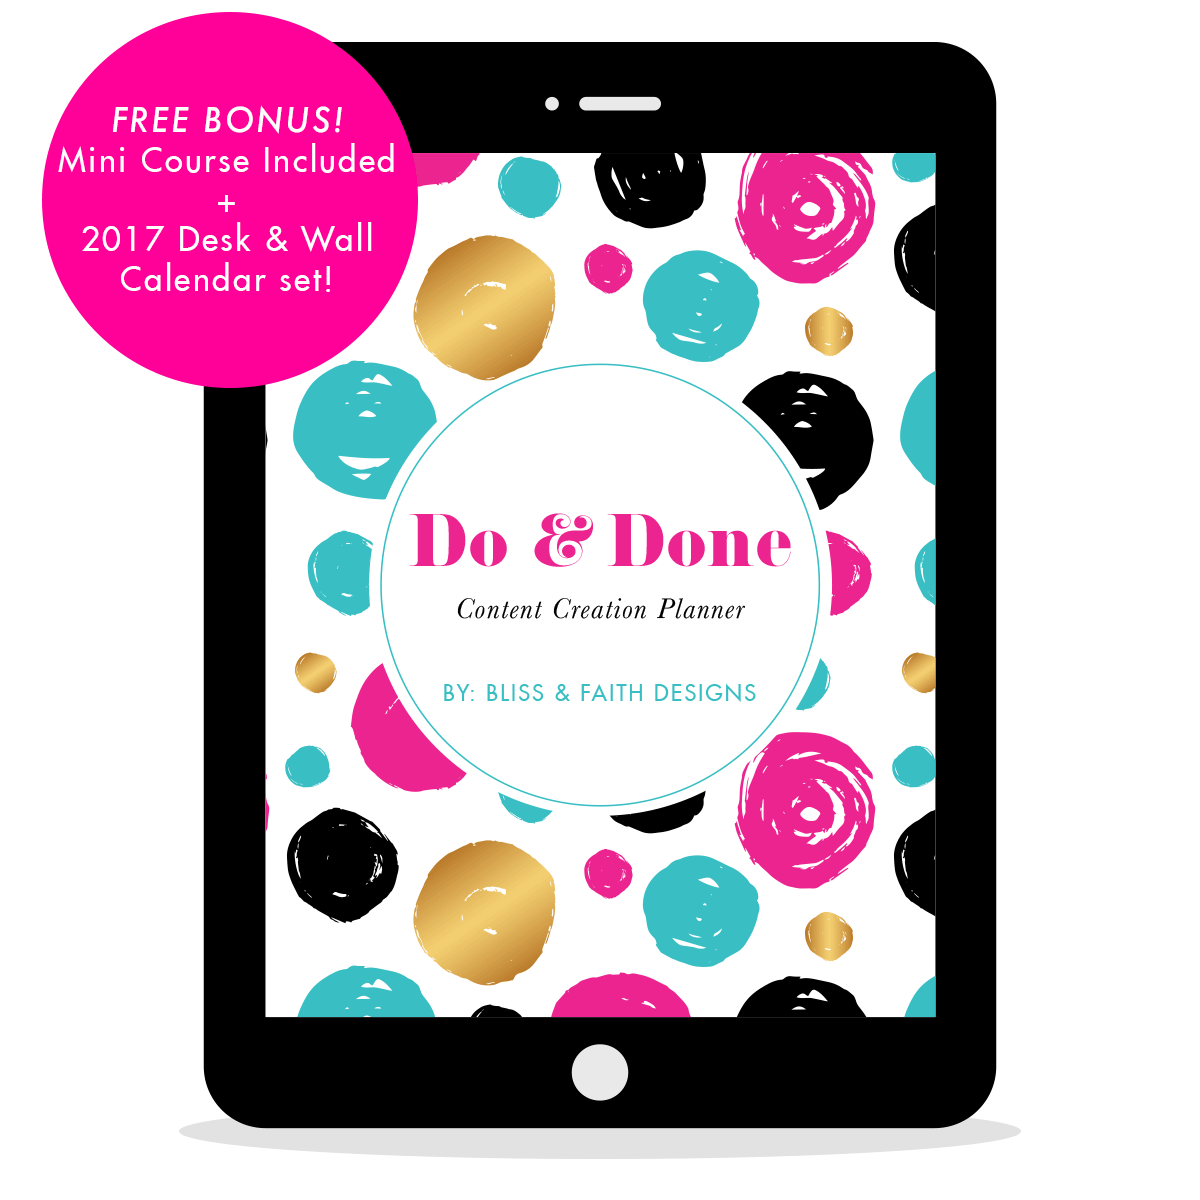 Do & Done Content Creation Planner | BlissandFaith.com